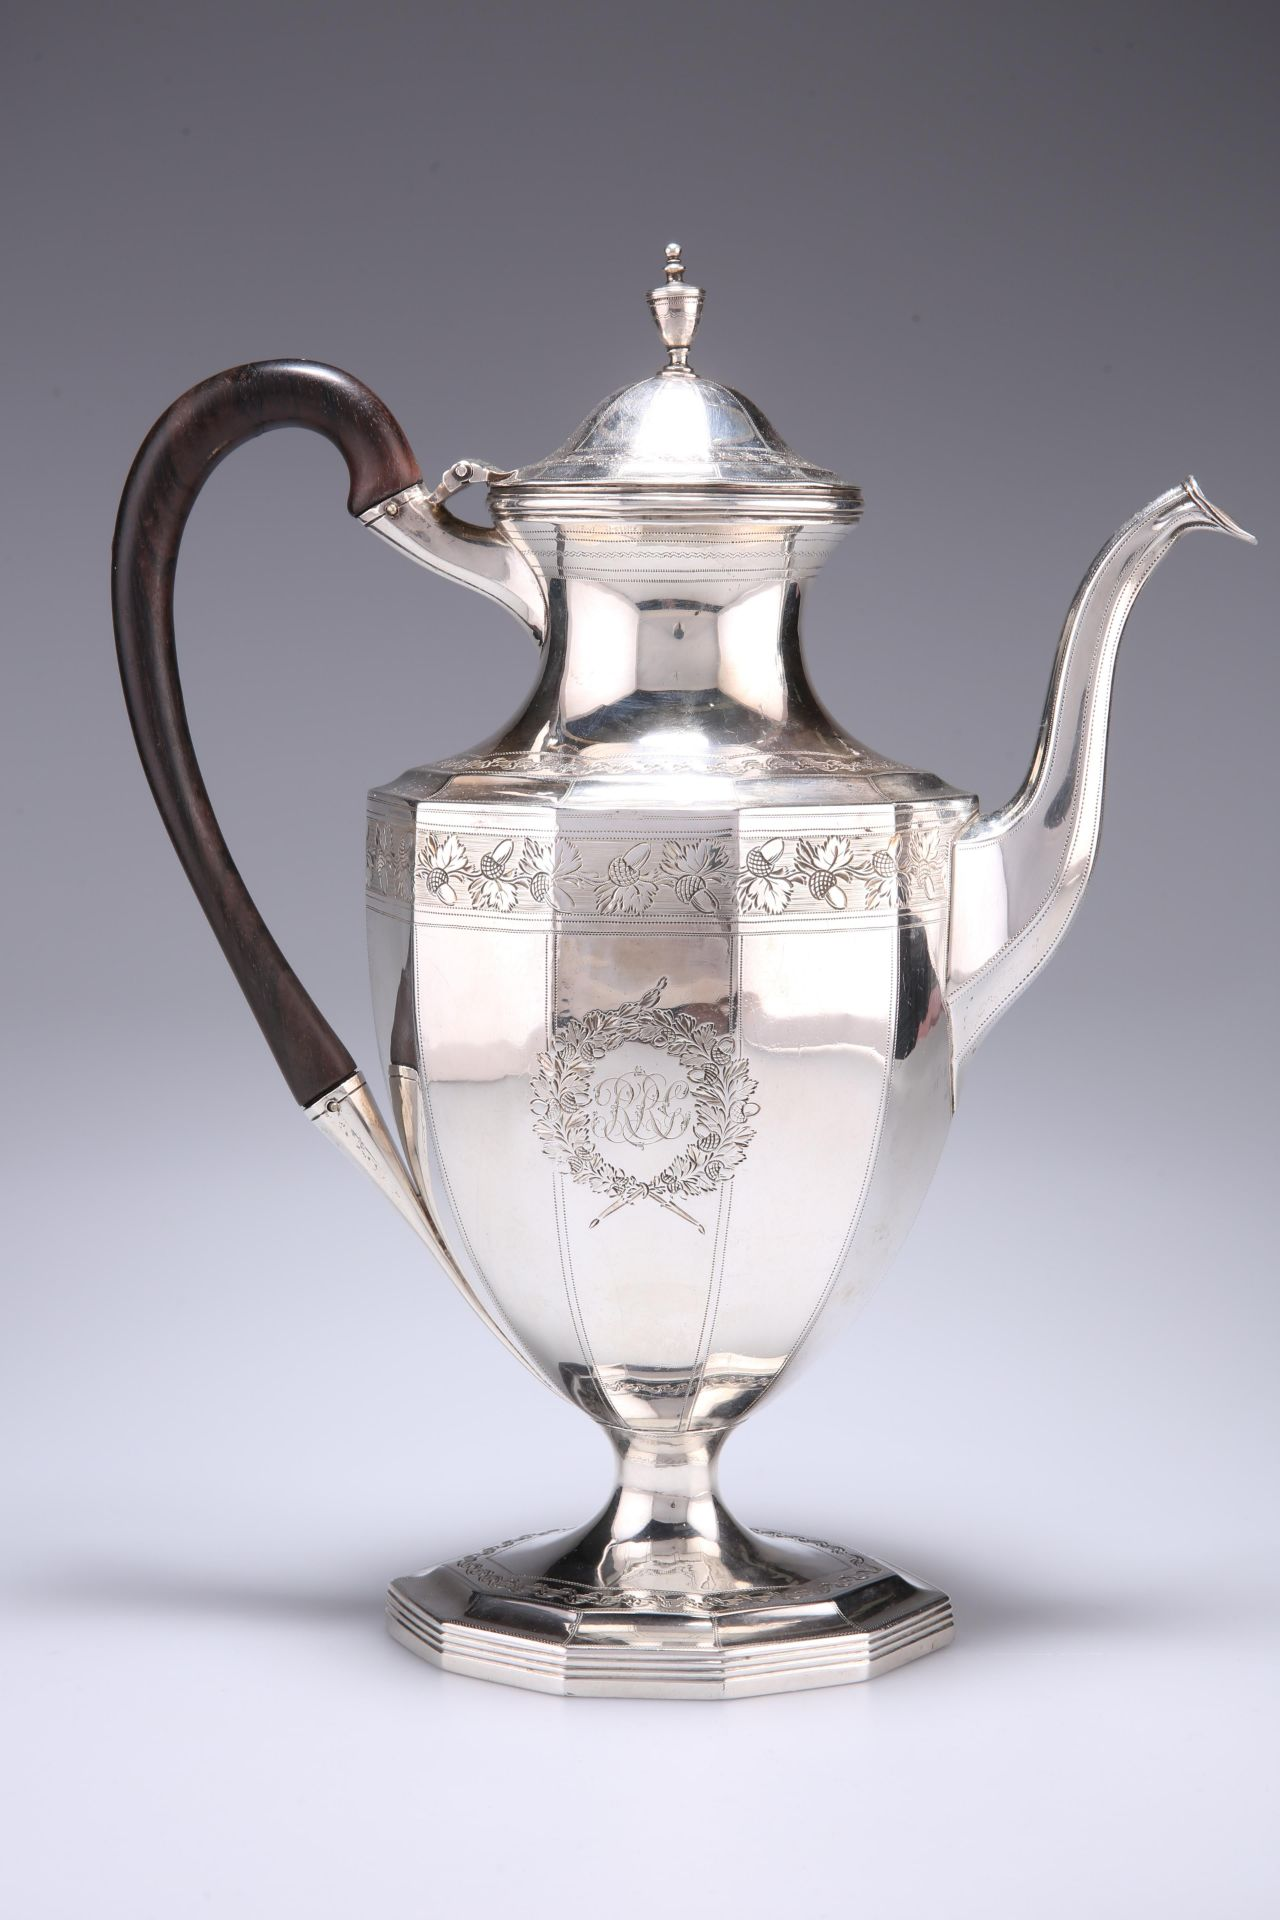 A GEORGE III SILVER COFFEE POT, by Robert Hennell I & David Hennell II, London 1796, panelled form